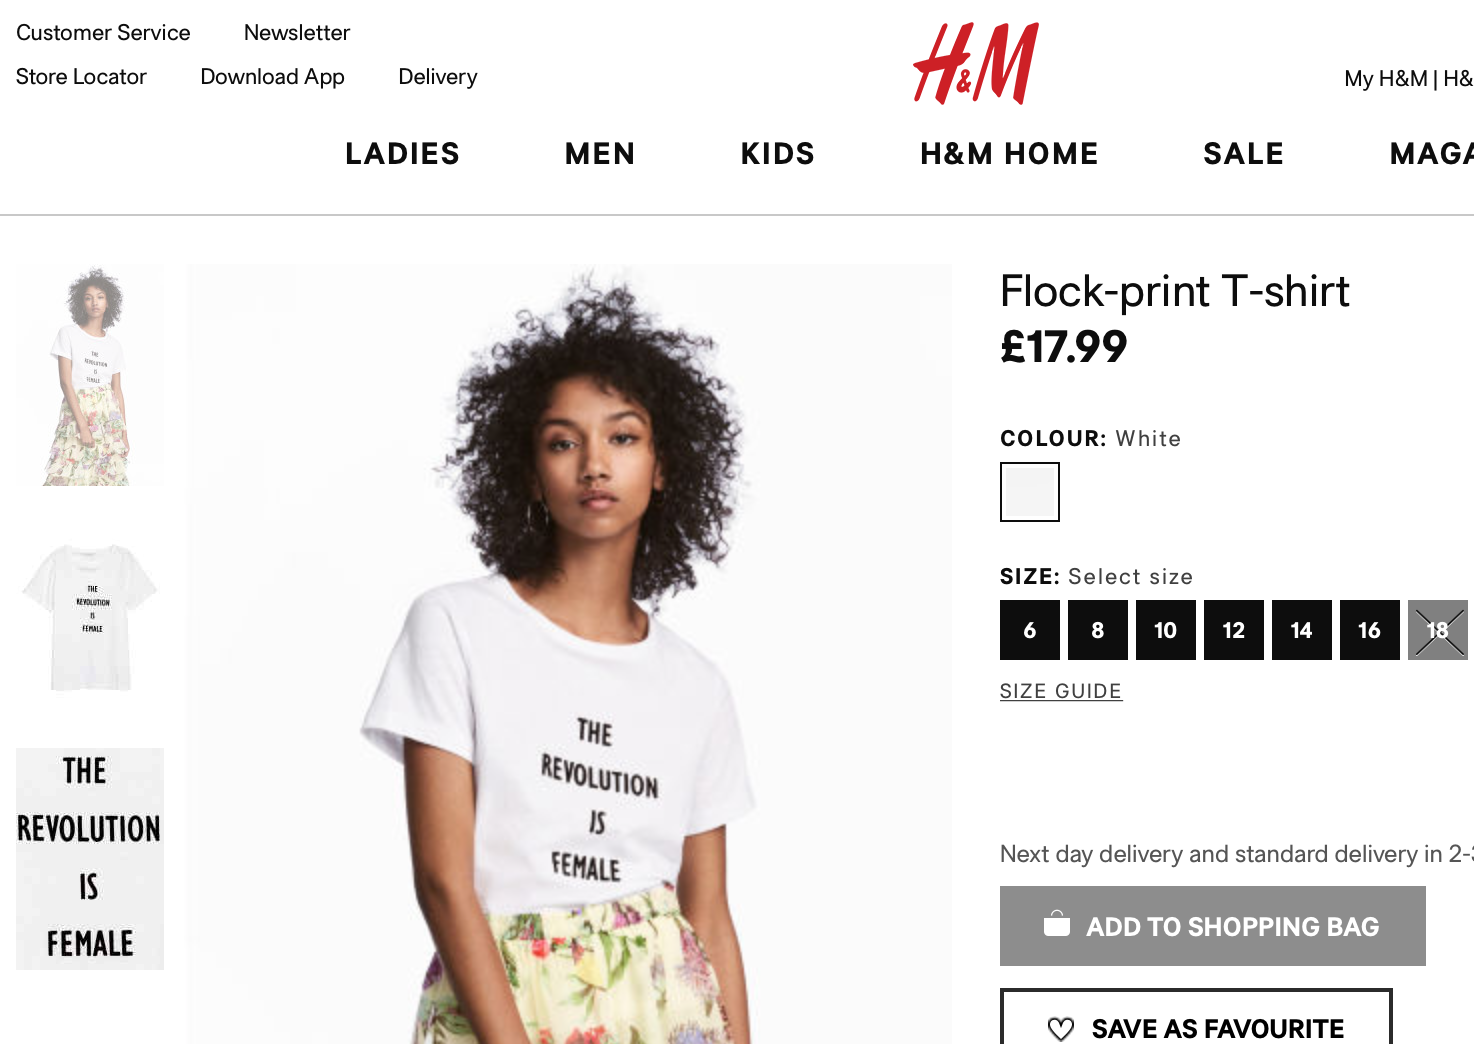 H&M The Revolution is Female T-shirt